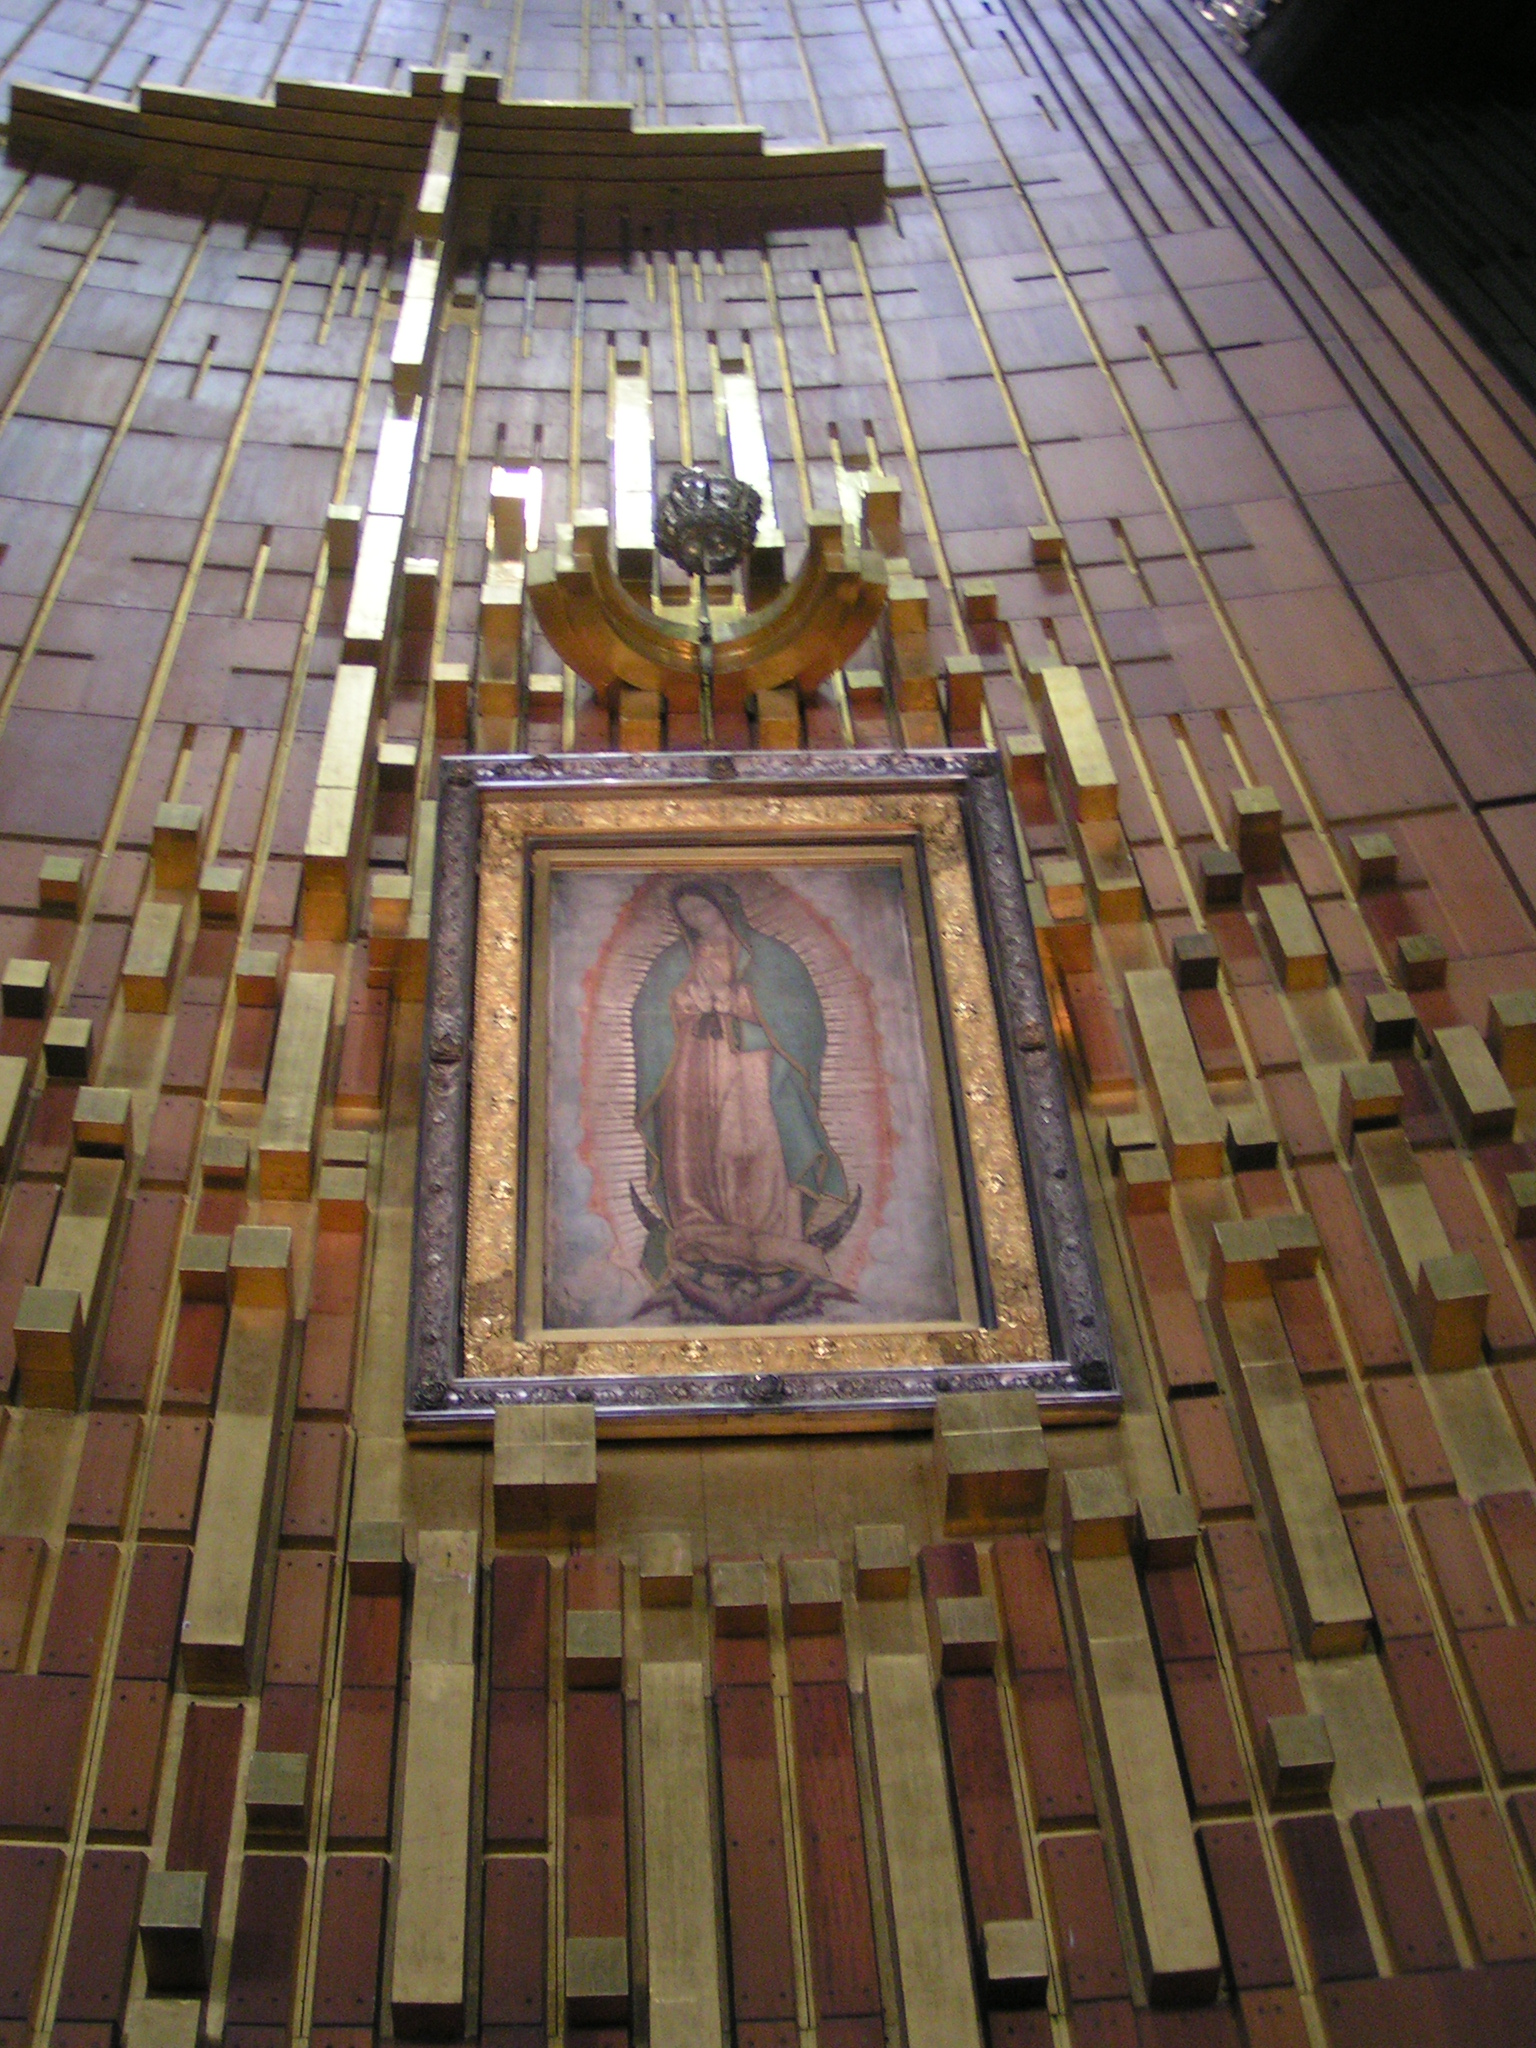 The original image in the Basilica of Our Lady of Guadalupe | Image source: Wikipedia